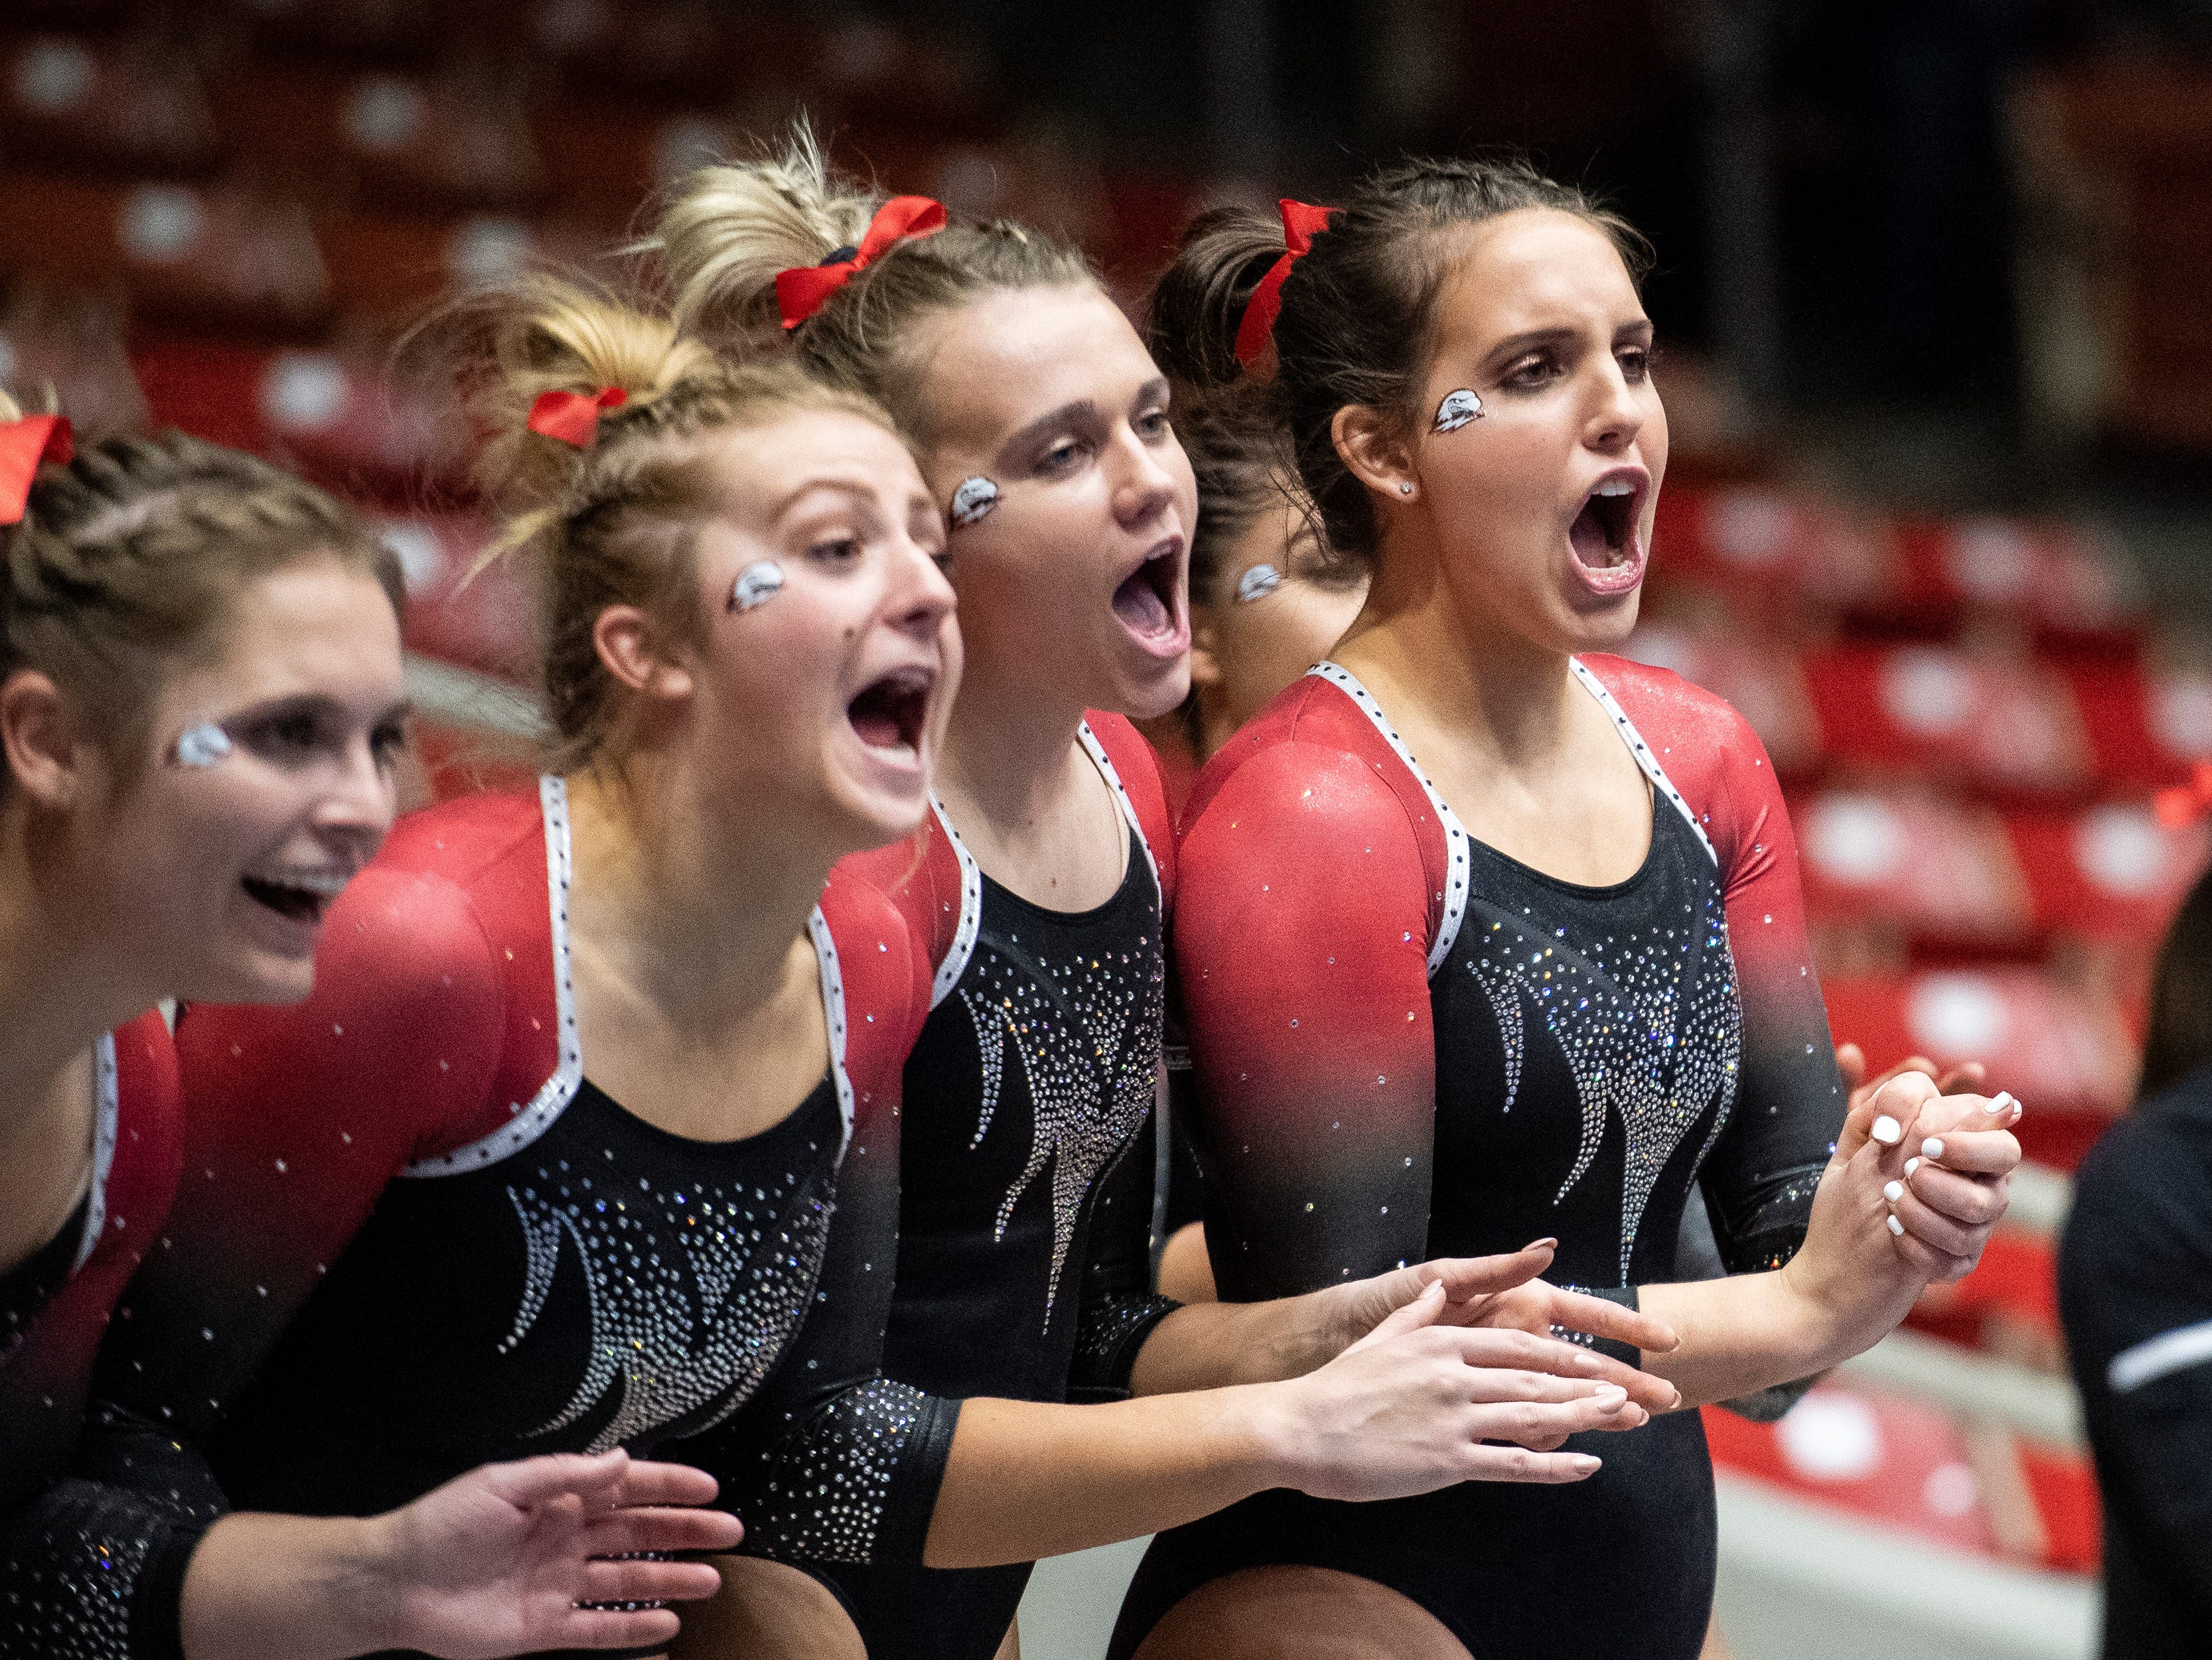 The Southern Utah Flippin' T-Birds cheer on a teammate during their floor routine against New Hampshire in the America First Event Center Monday, January 7, 2019.